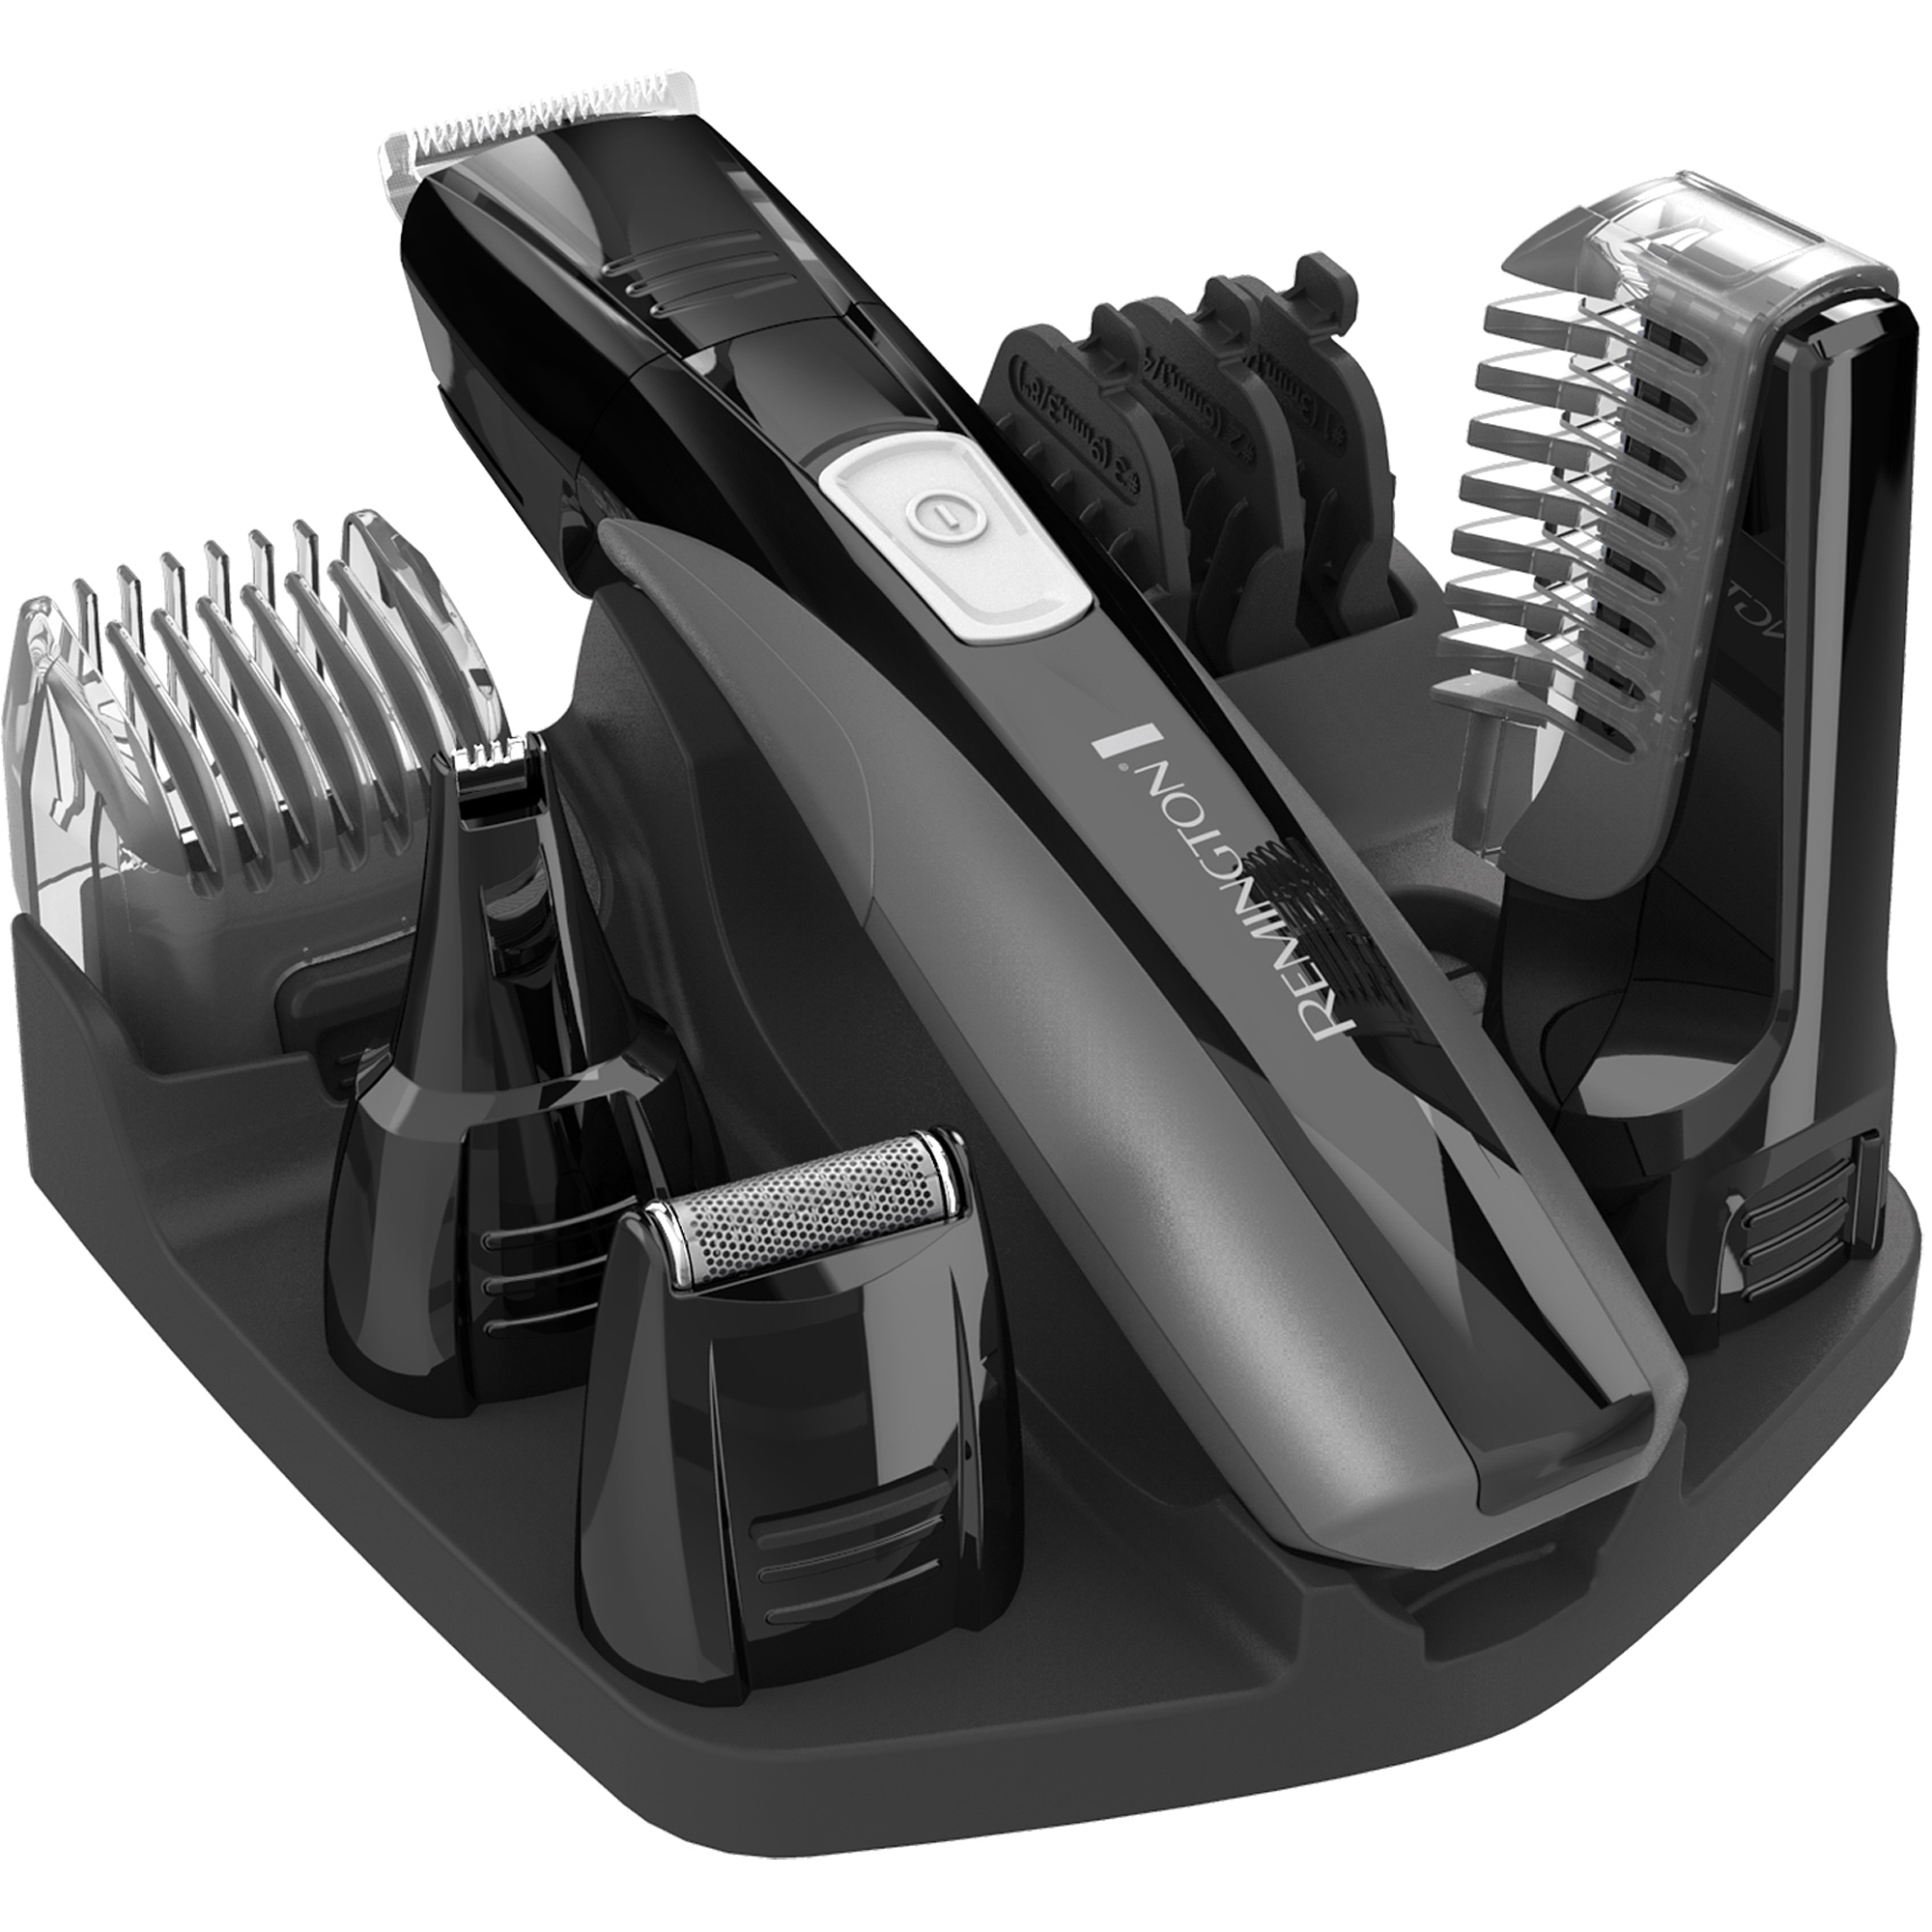 Remington Lithium Power Series Head-To-Toe Grooming Kit